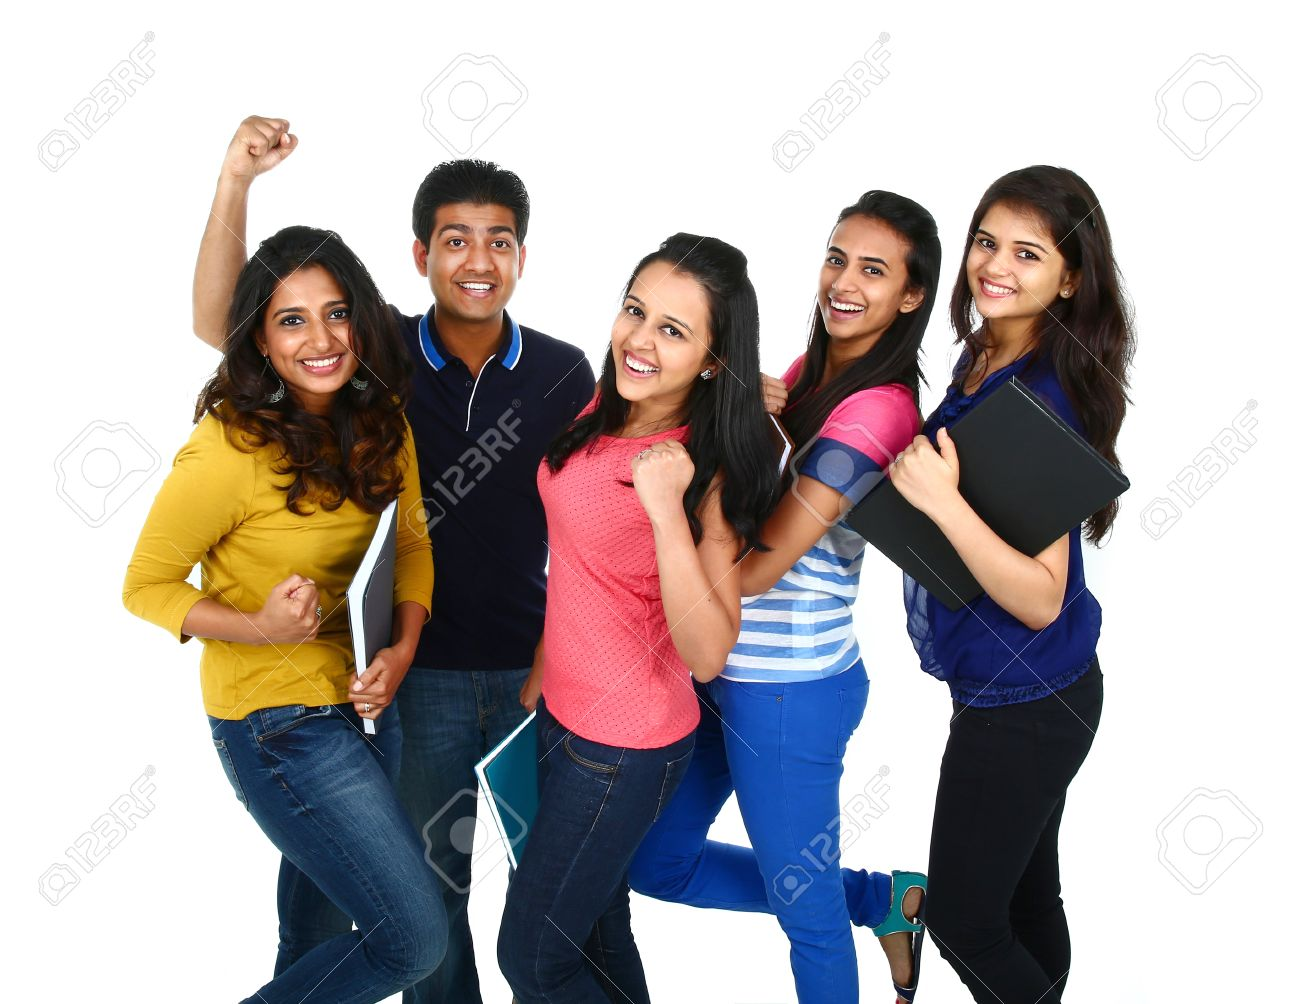 Happy smiling portrait of Young Indian/Asian group of people looking at camera, smiling and celebrating. Isolated on white background. Stock Photo - 38119348